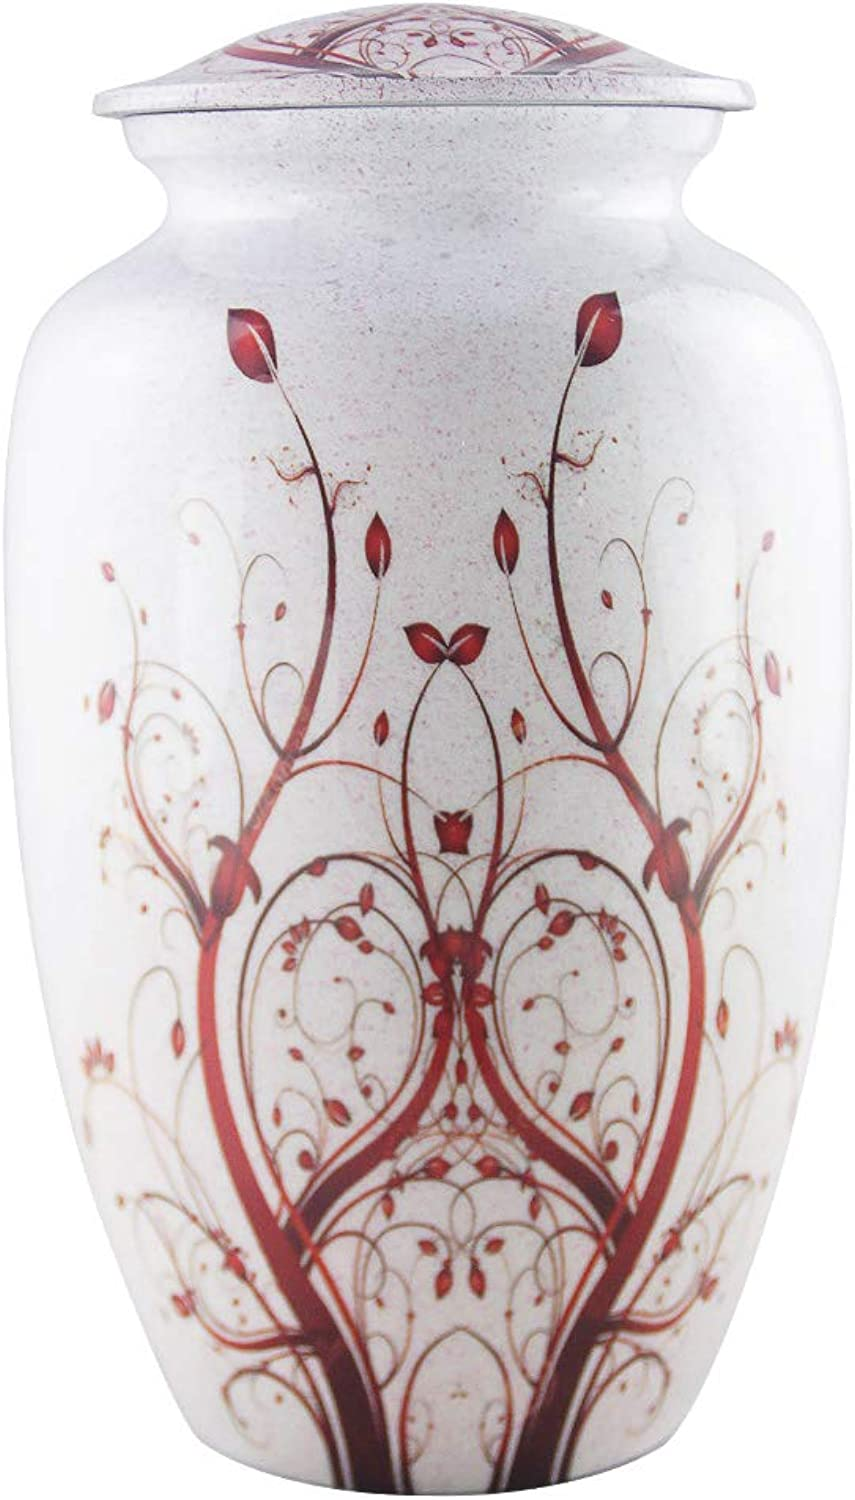 MEILINXU - Funeral Urns for Adults Ashes, Cremation Urn for Human Ashes - Memorials Urns for Ashes -Display Burial Urn at Home or in Niche at Columbarium (Red Flower of Life, Aluminum Large White Urn